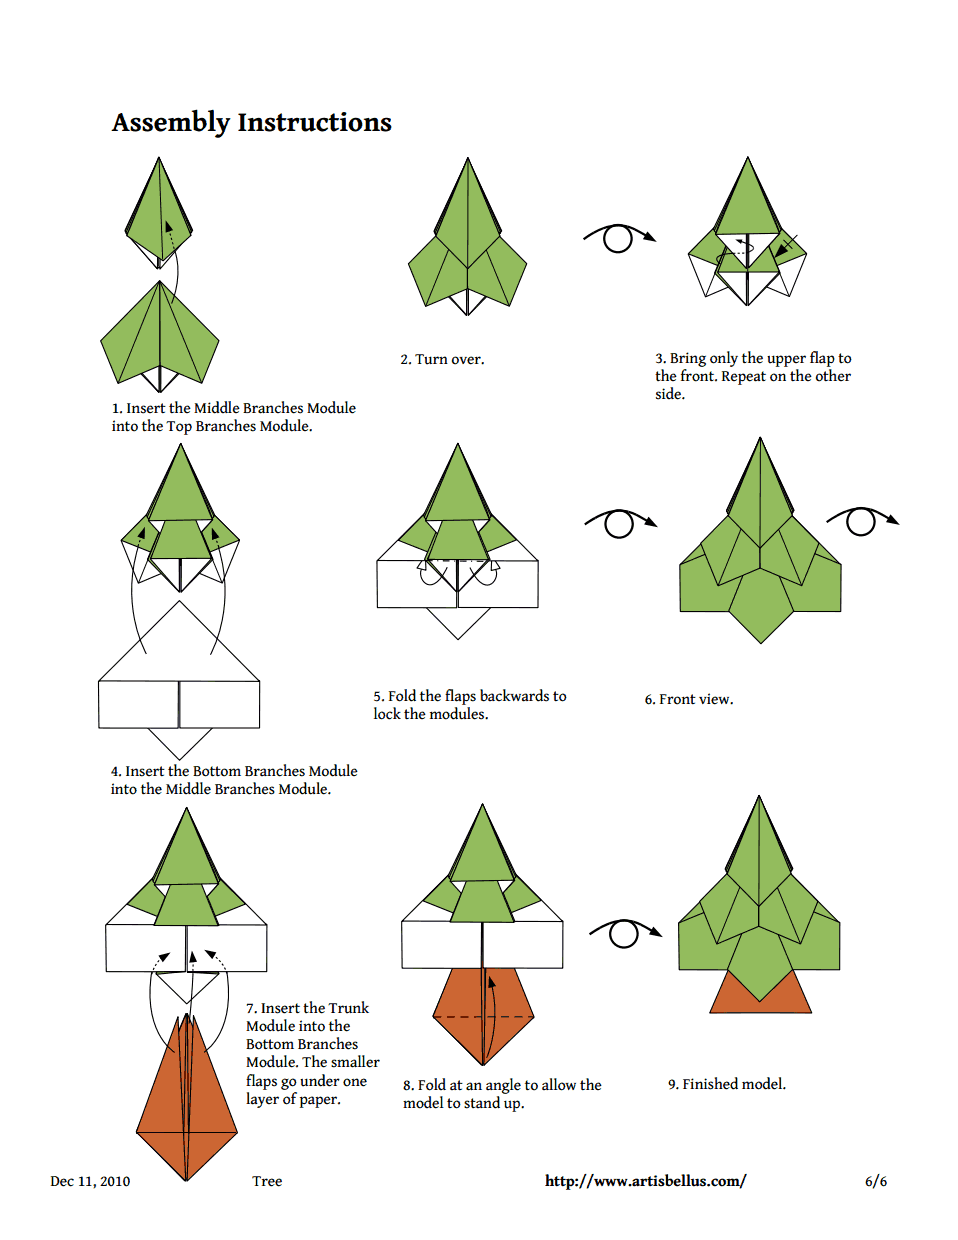 Diagram Origami Christmas Models Great Installation Of Wiring Halloween Artisbellus Tree Pdf Informational Text Pinterest Rh Co Uk Directions Easy Holiday